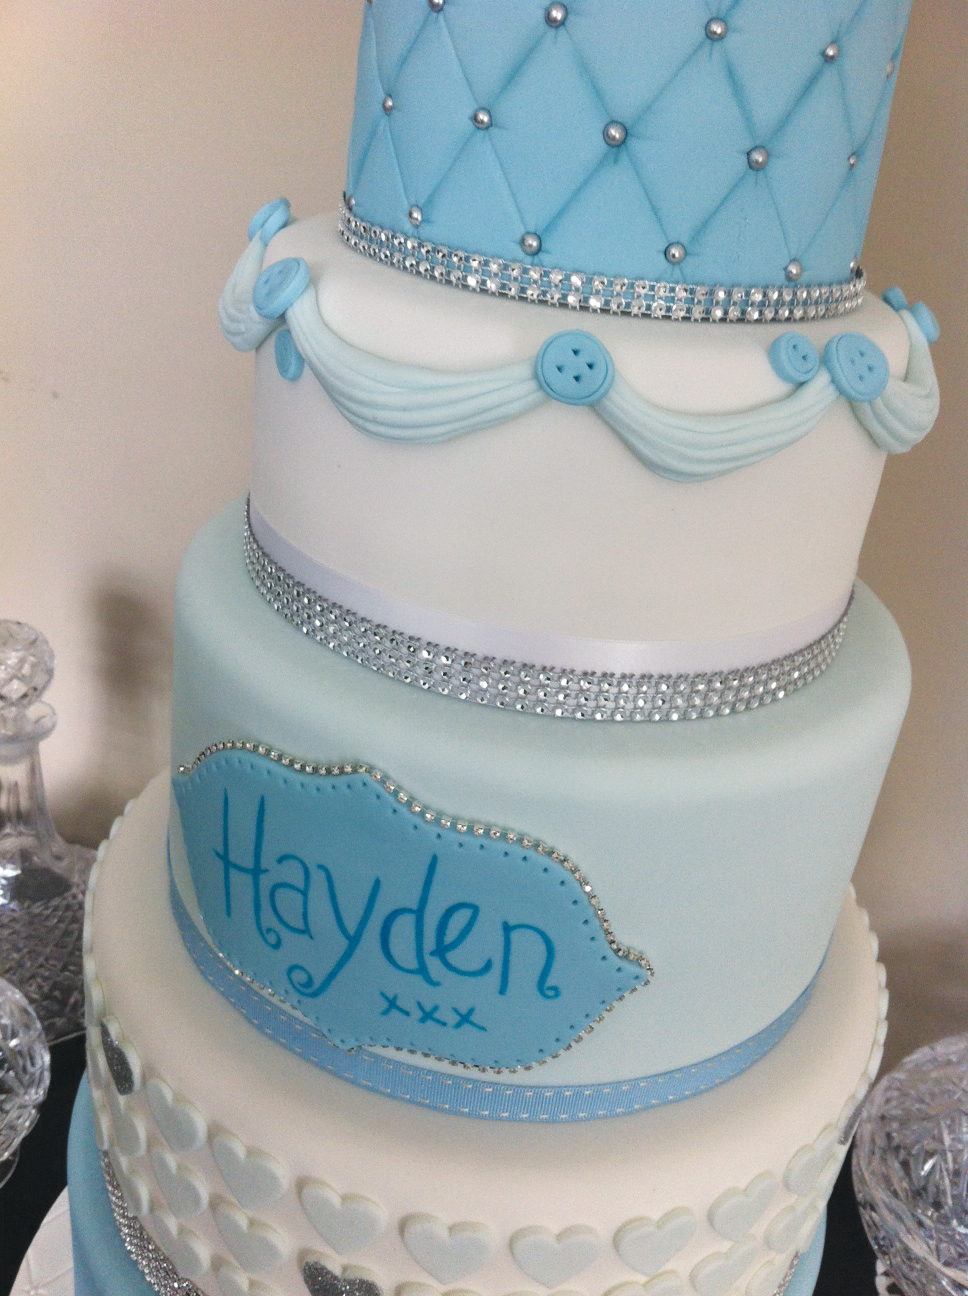 Christening / wedding style - Licky lips Cakes Liverpool 4.JPG